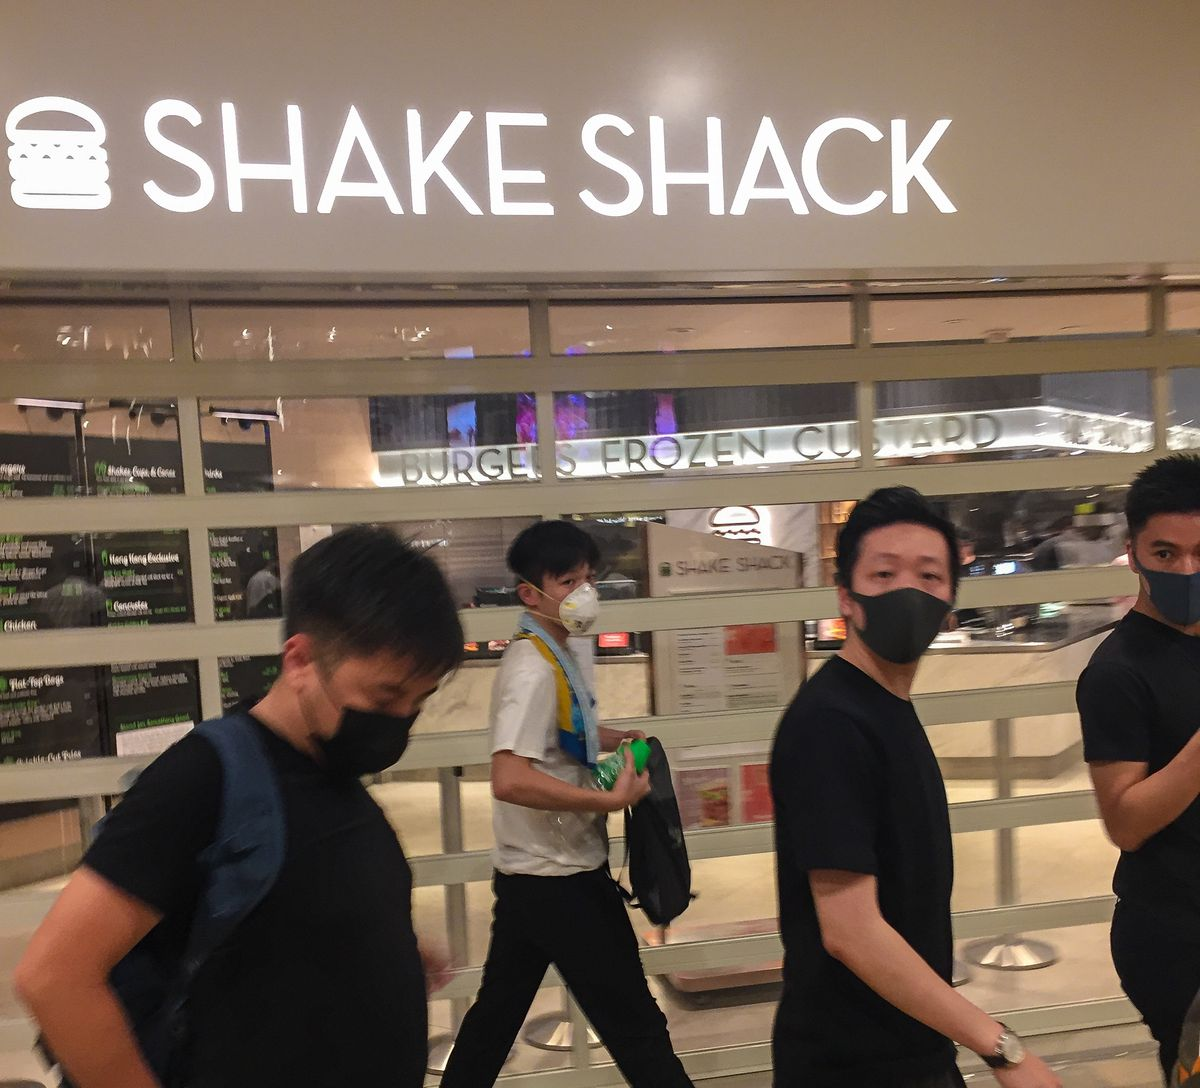 four masked protestors walk by a Shake Shack sign